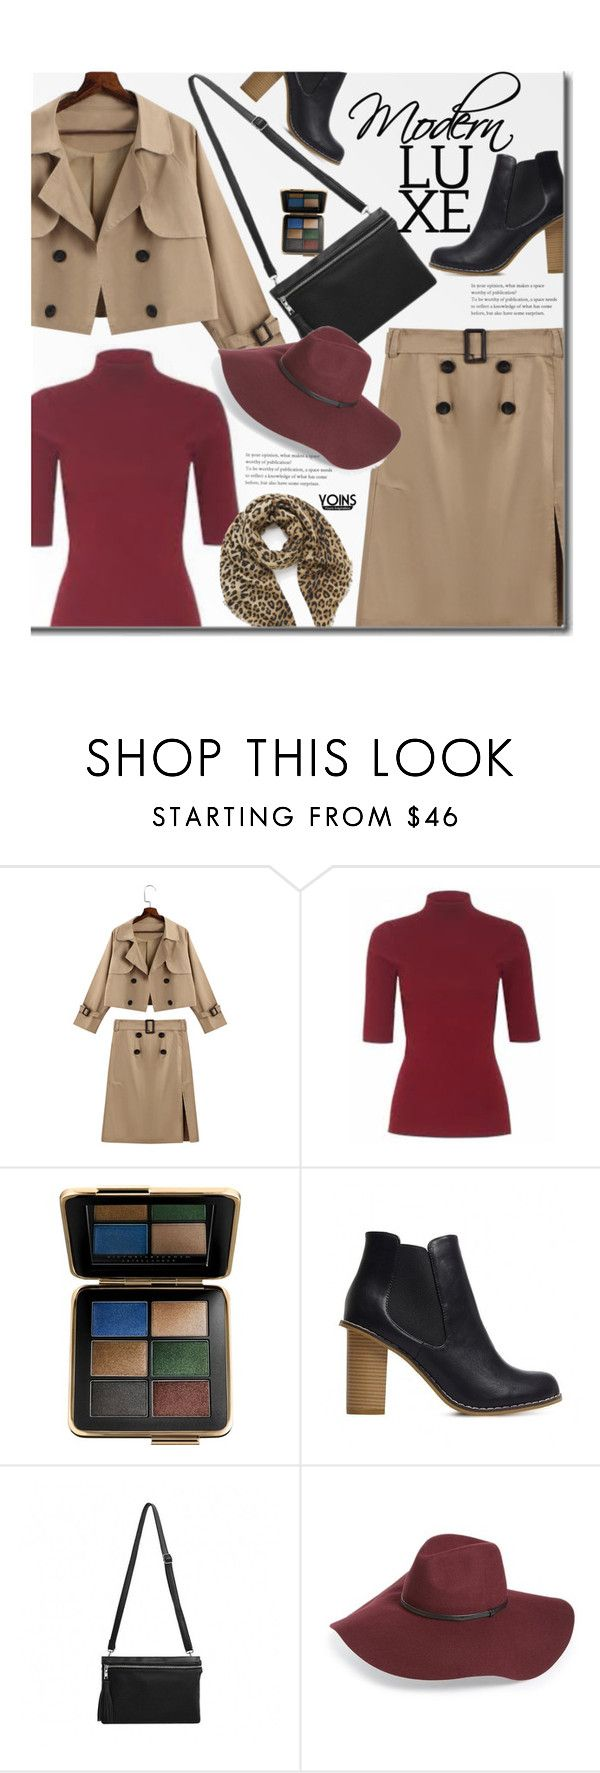 """""""Yoins Street Chic"""" by beebeely-look ❤ liked on Polyvore featuring Estée Lauder, Halogen, Mulberry, WorkWear, LeopardPrint, officestyle, falltrend and yoinscollection"""